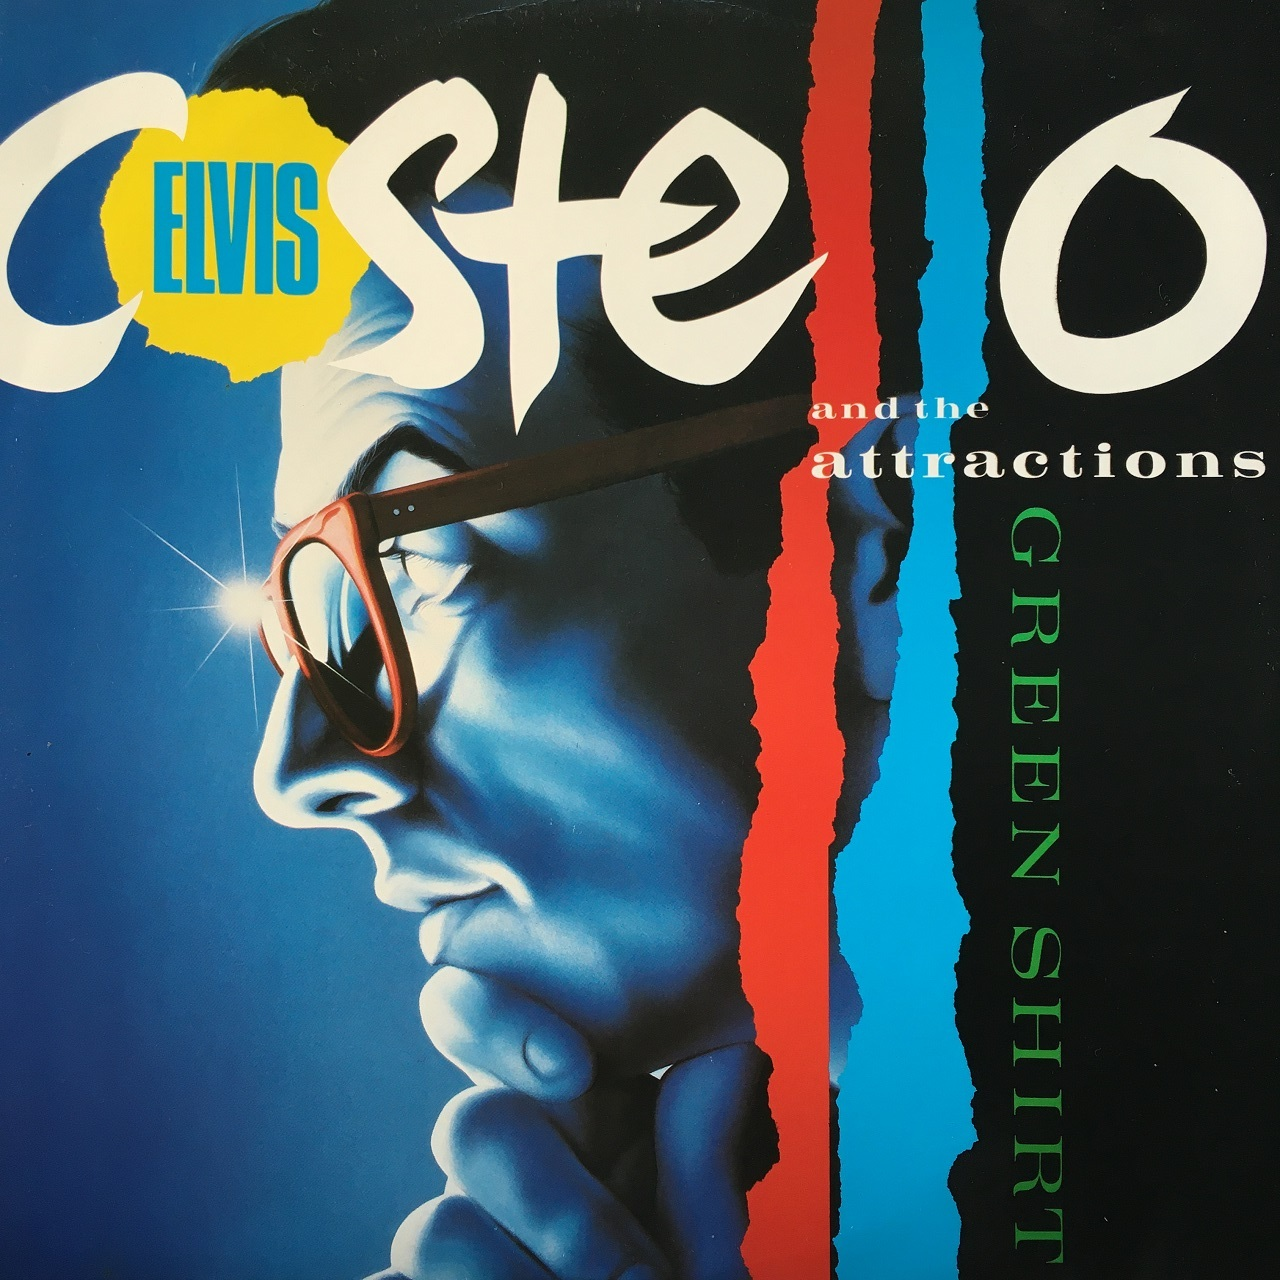 【12inch・英盤】Elvis Costello & the Attractions / Green Shirt